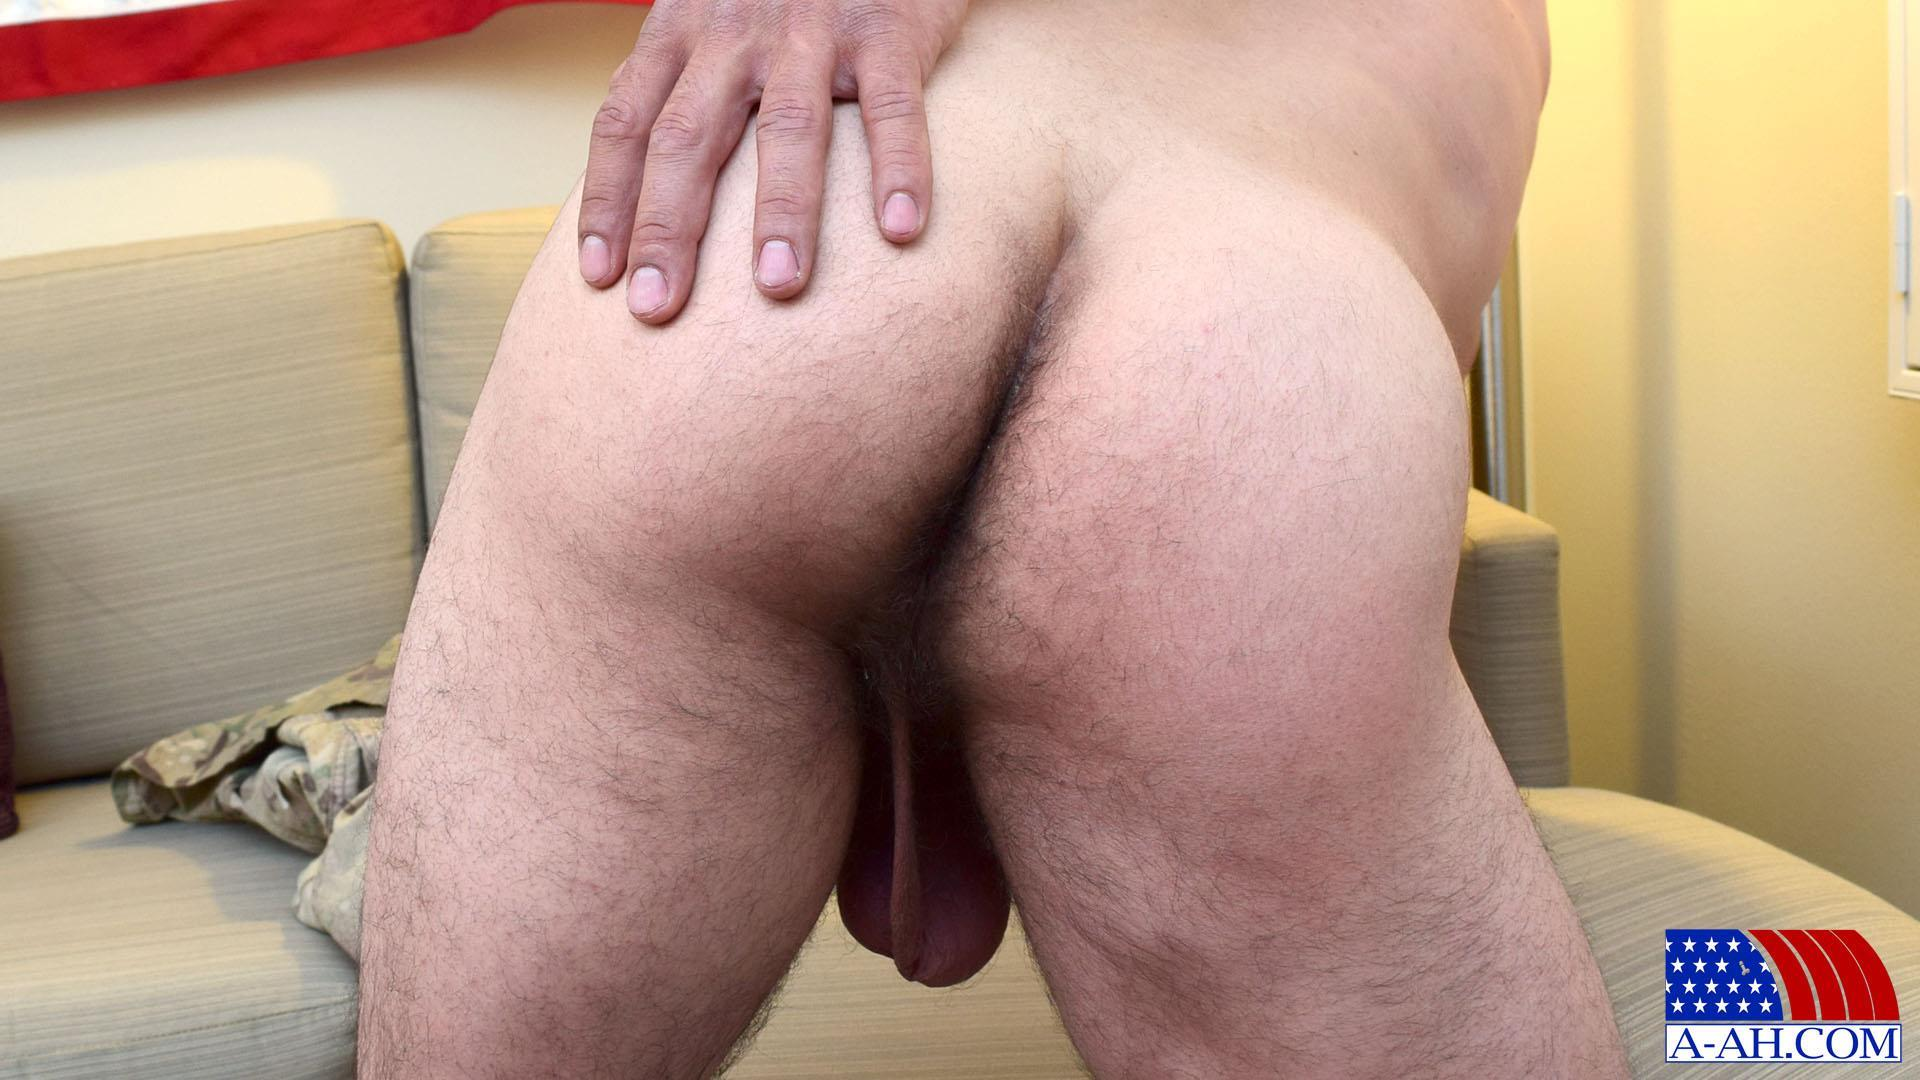 All-American-Heroes-JB-US-Amry-Soldier-Jerking-His-Big-Uncut-Cock-Amateur-Gay-Porn-13 Amateur Straight US Army Specialist Stroking His Big Uncut Cock